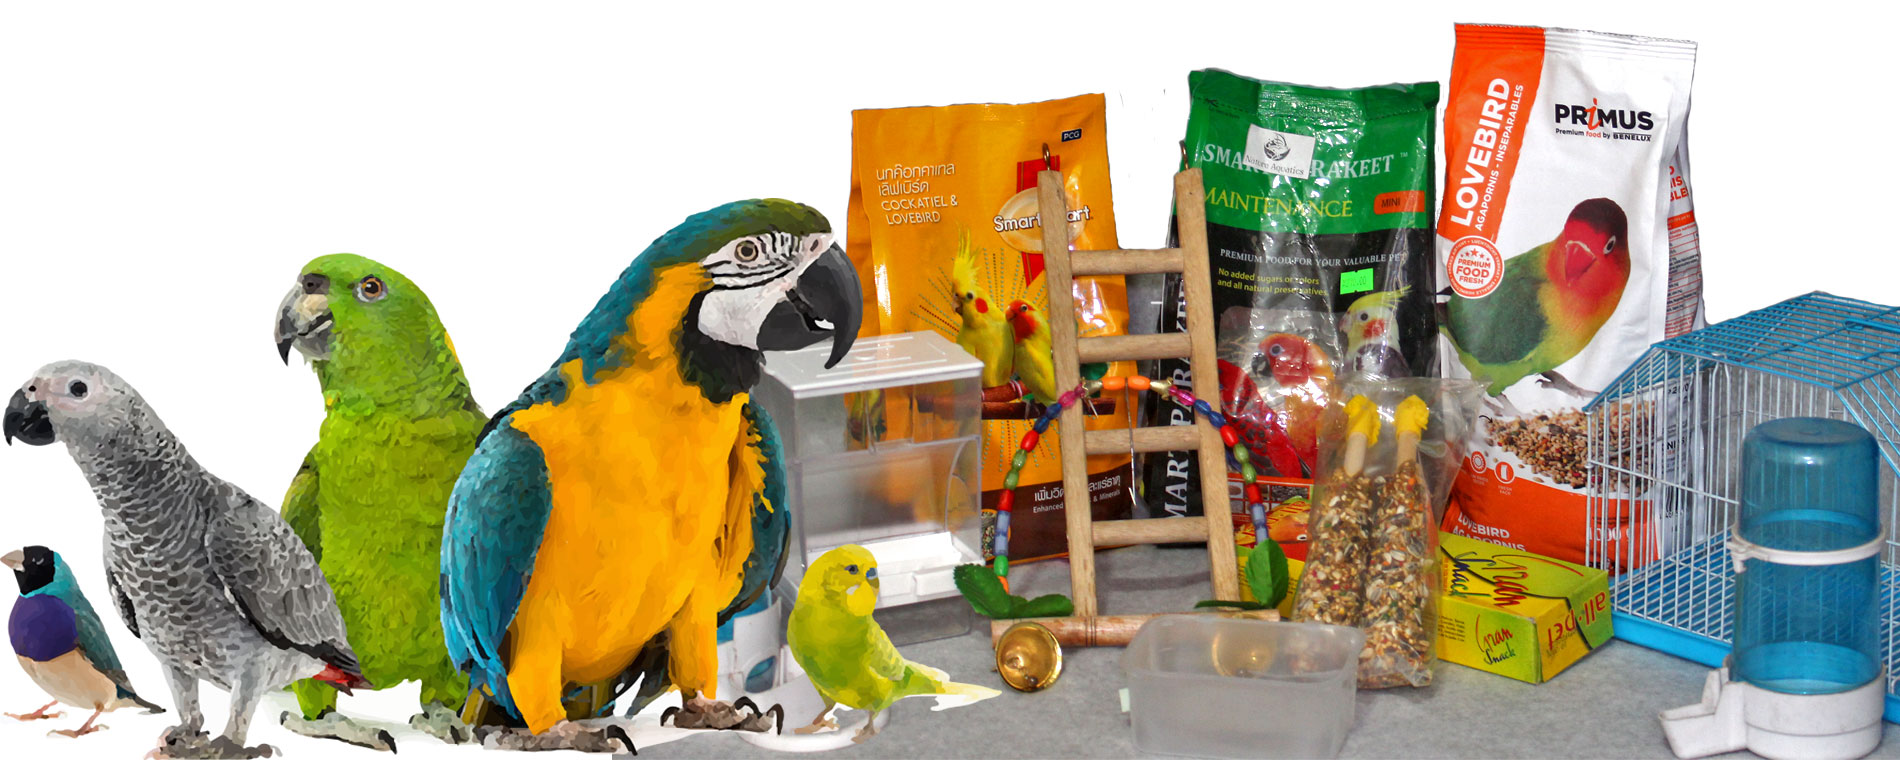 Large collection of Bird product available in aquarium.com.bd